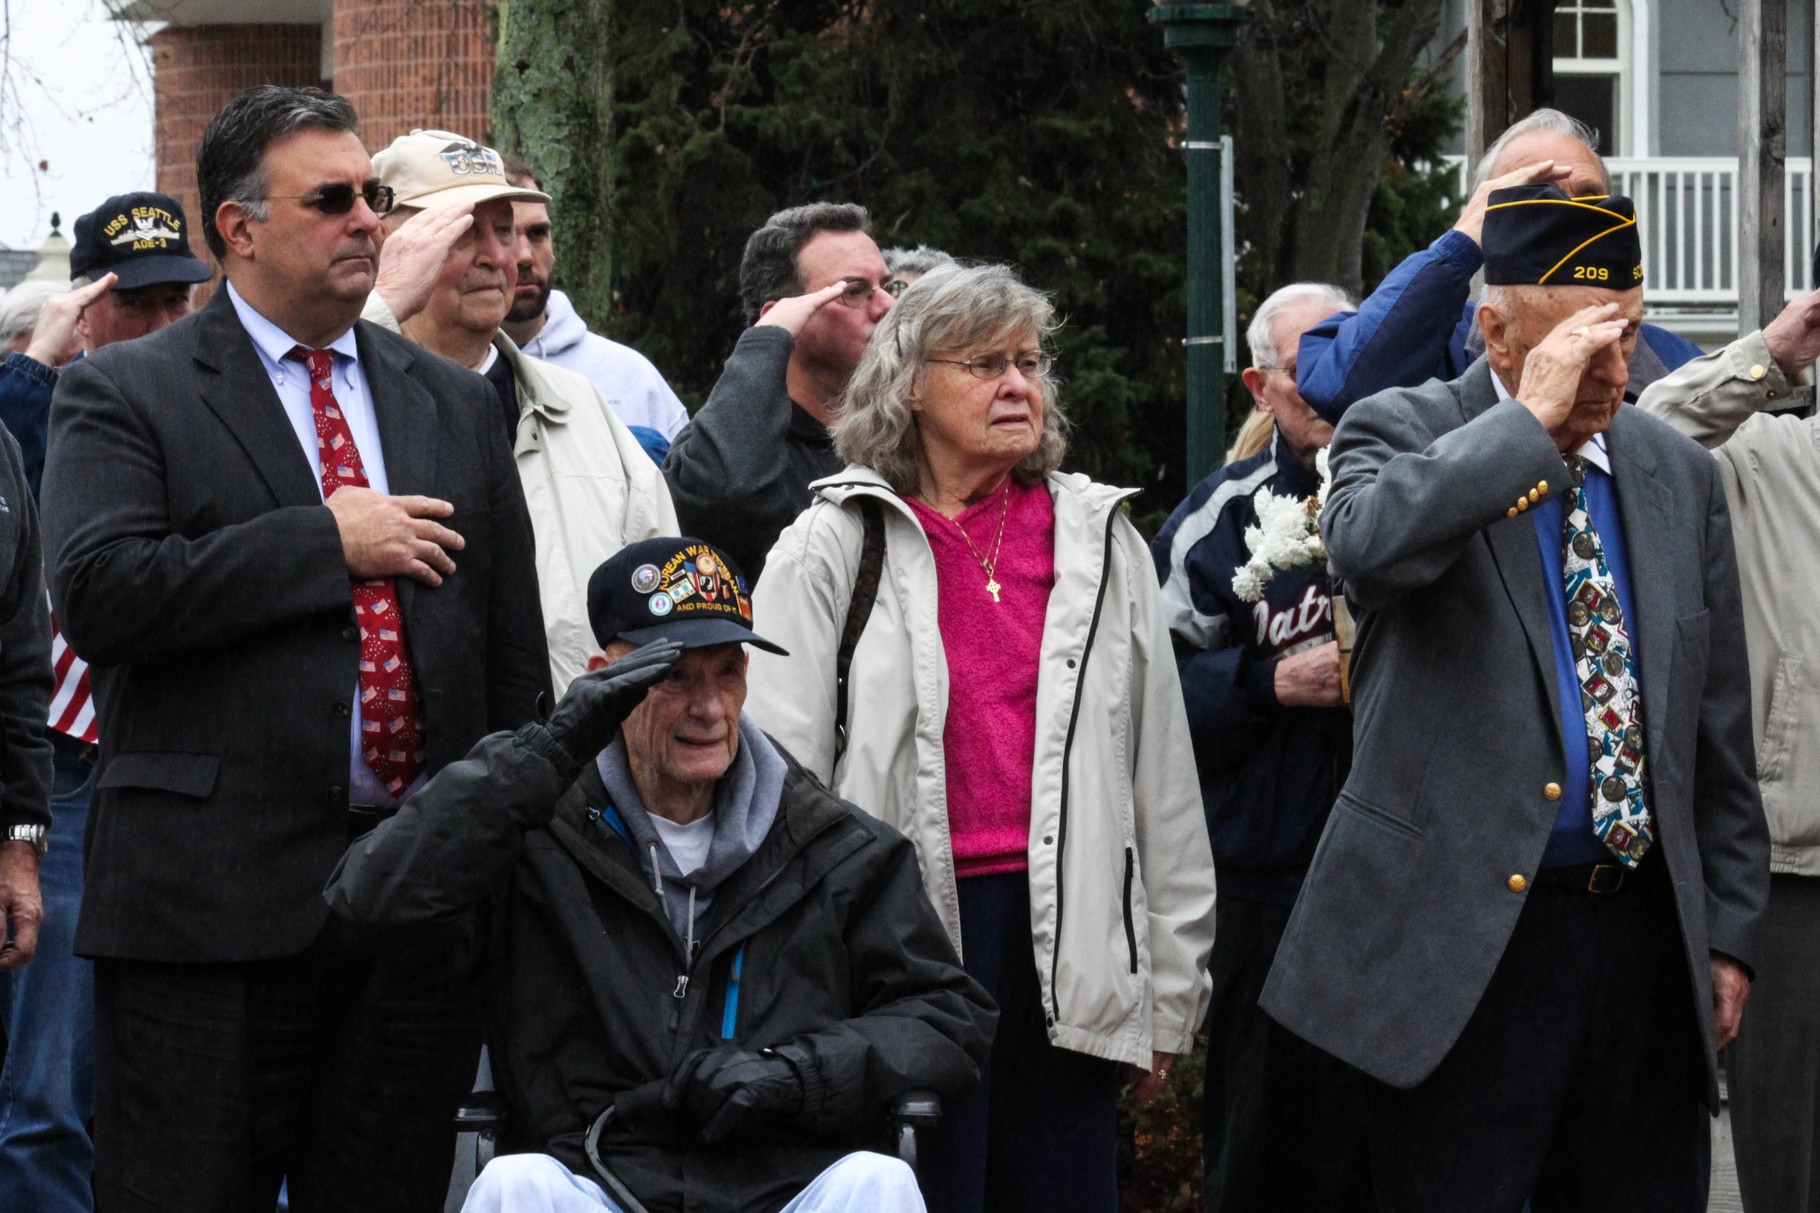 Al Mirabella joins Veterans in saluting the flag